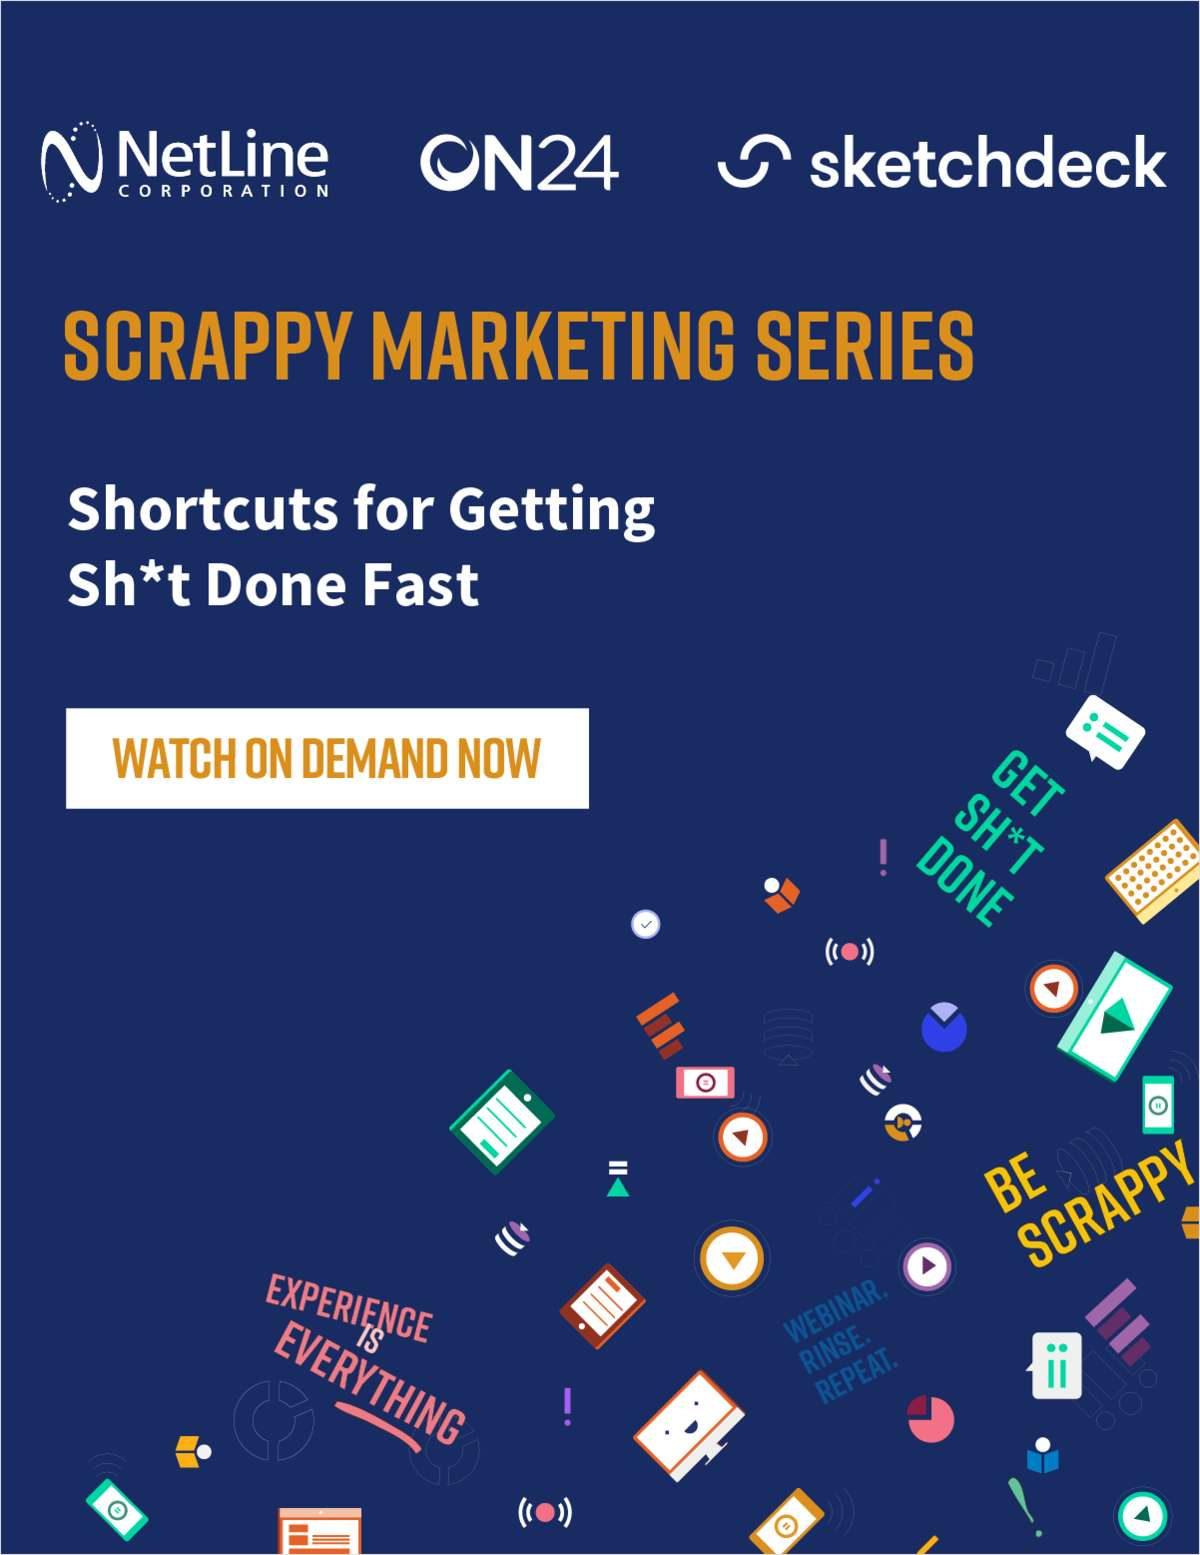 Scrappy Marketing Series: Shortcuts for Getting Sh*t Done Fast